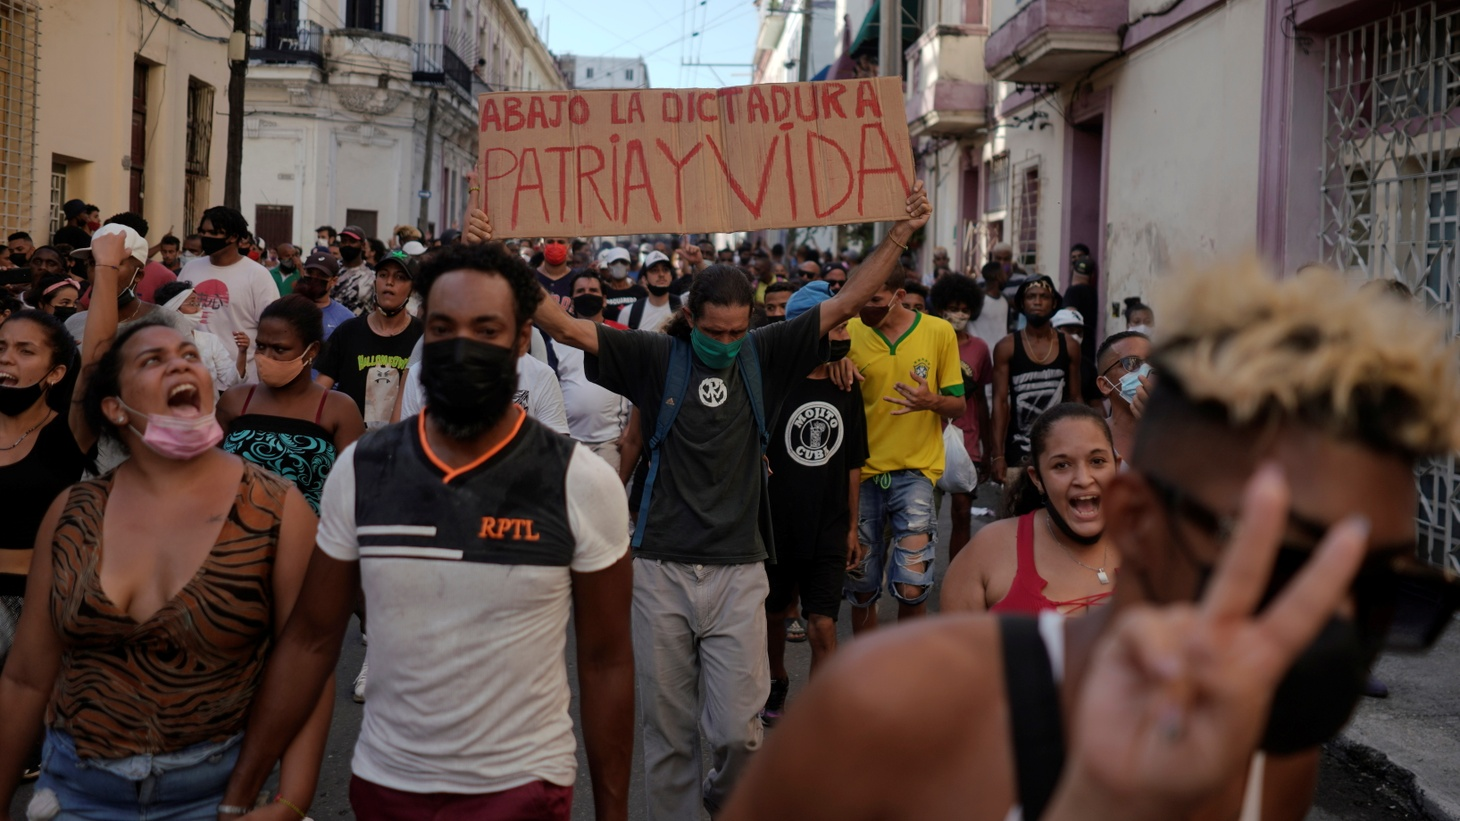 People shout slogans against the government during a protest amidst the coronavirus disease (COVID-19) outbreak, in Havana, Cuba July 11, 2021.